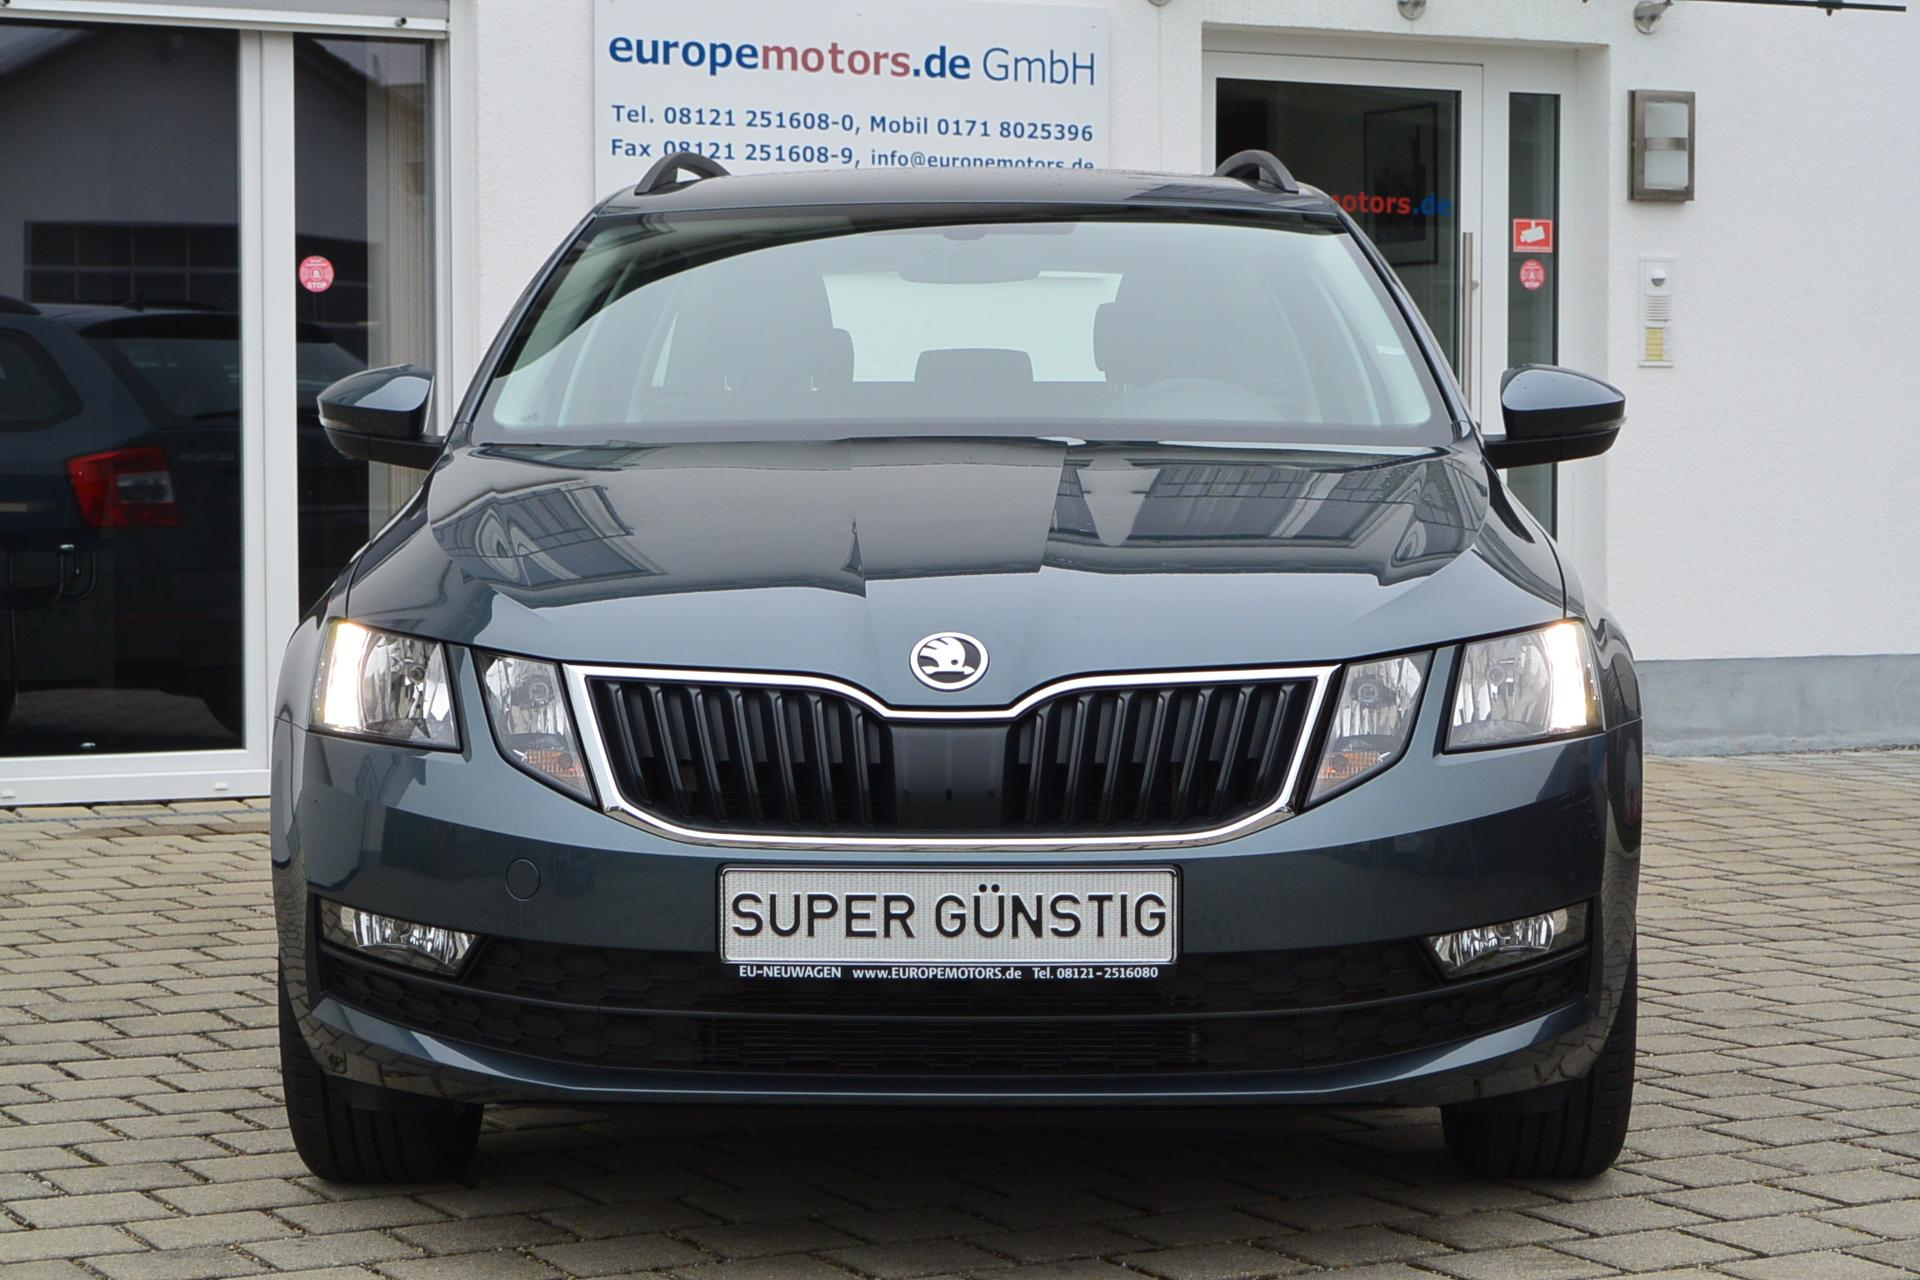 skoda octavia combi exe navi reimport eu neuwagen zum g nstigen preis. Black Bedroom Furniture Sets. Home Design Ideas